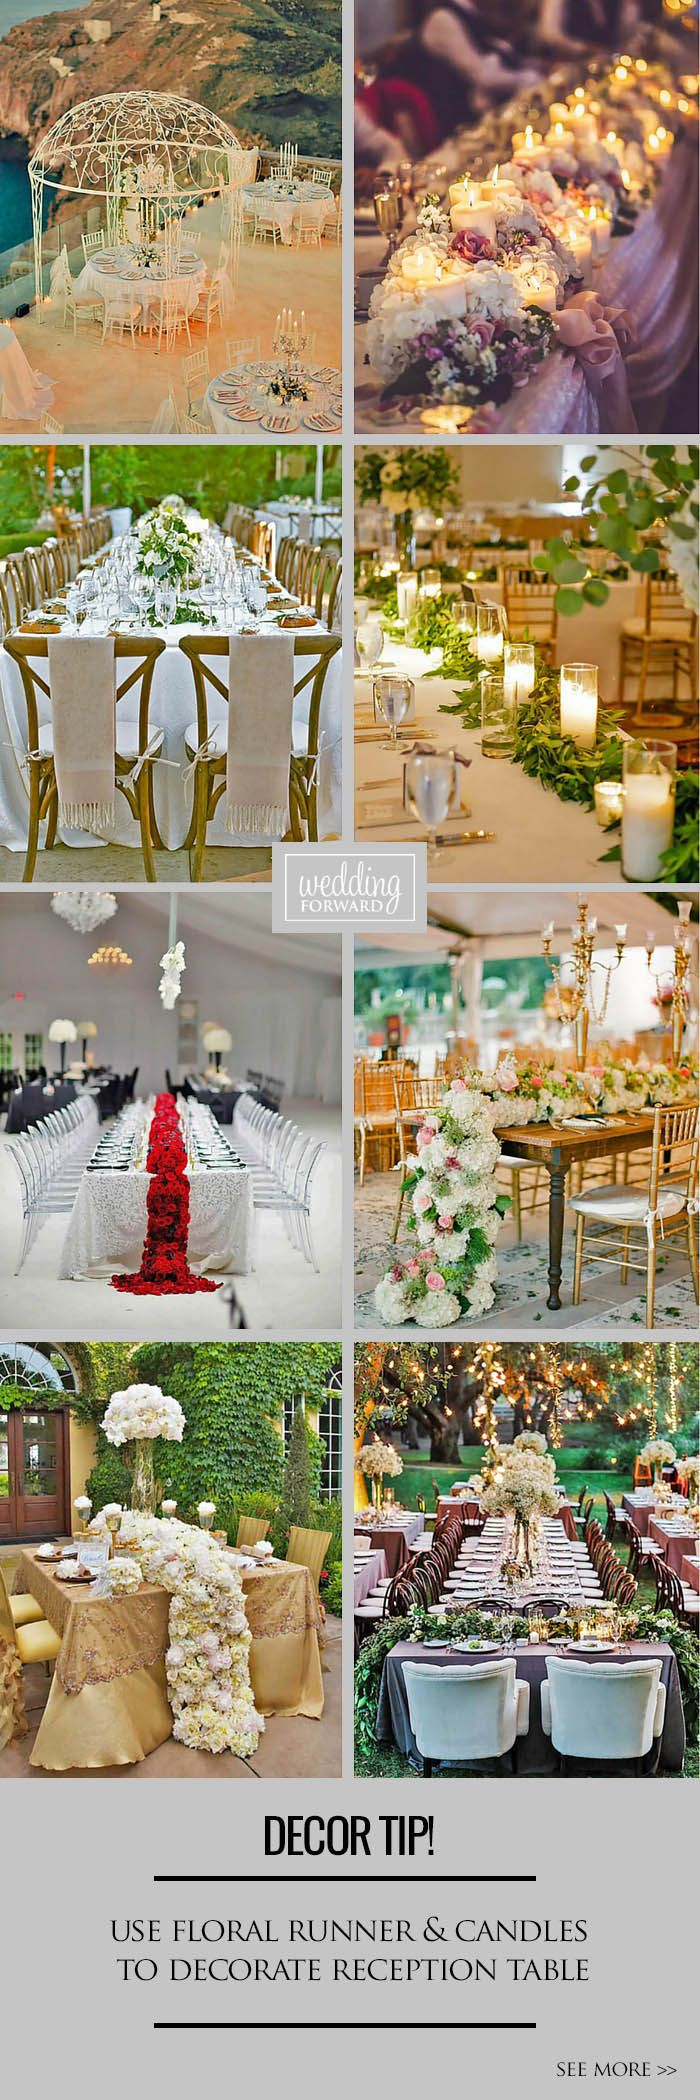 24 Ways To Transform Your Reception Space ❤ When you have chosen haircut, makeup, dress it's time to think about reception. See more: http://www.weddingforward.com/wedding-reception-space/ #weddings #decorations